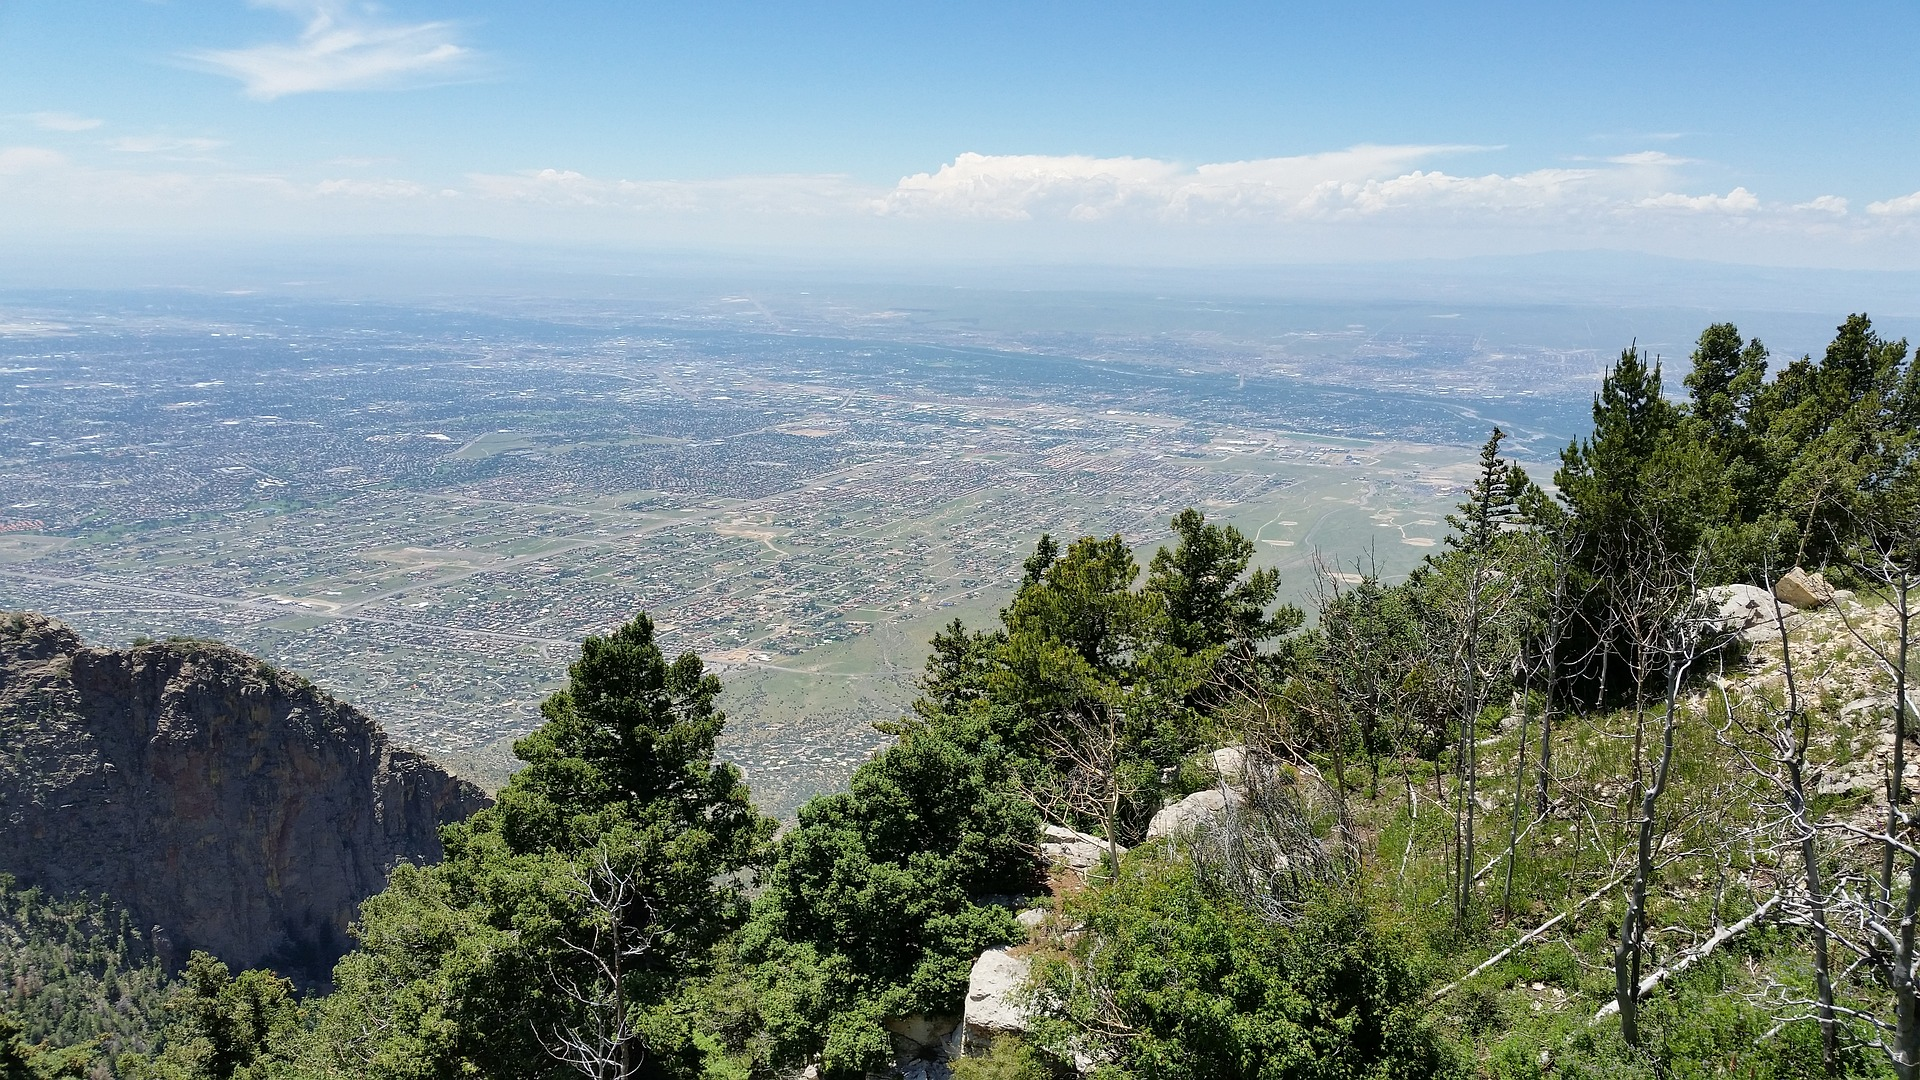 Daytime view of Albuquerque from top of the Sandia